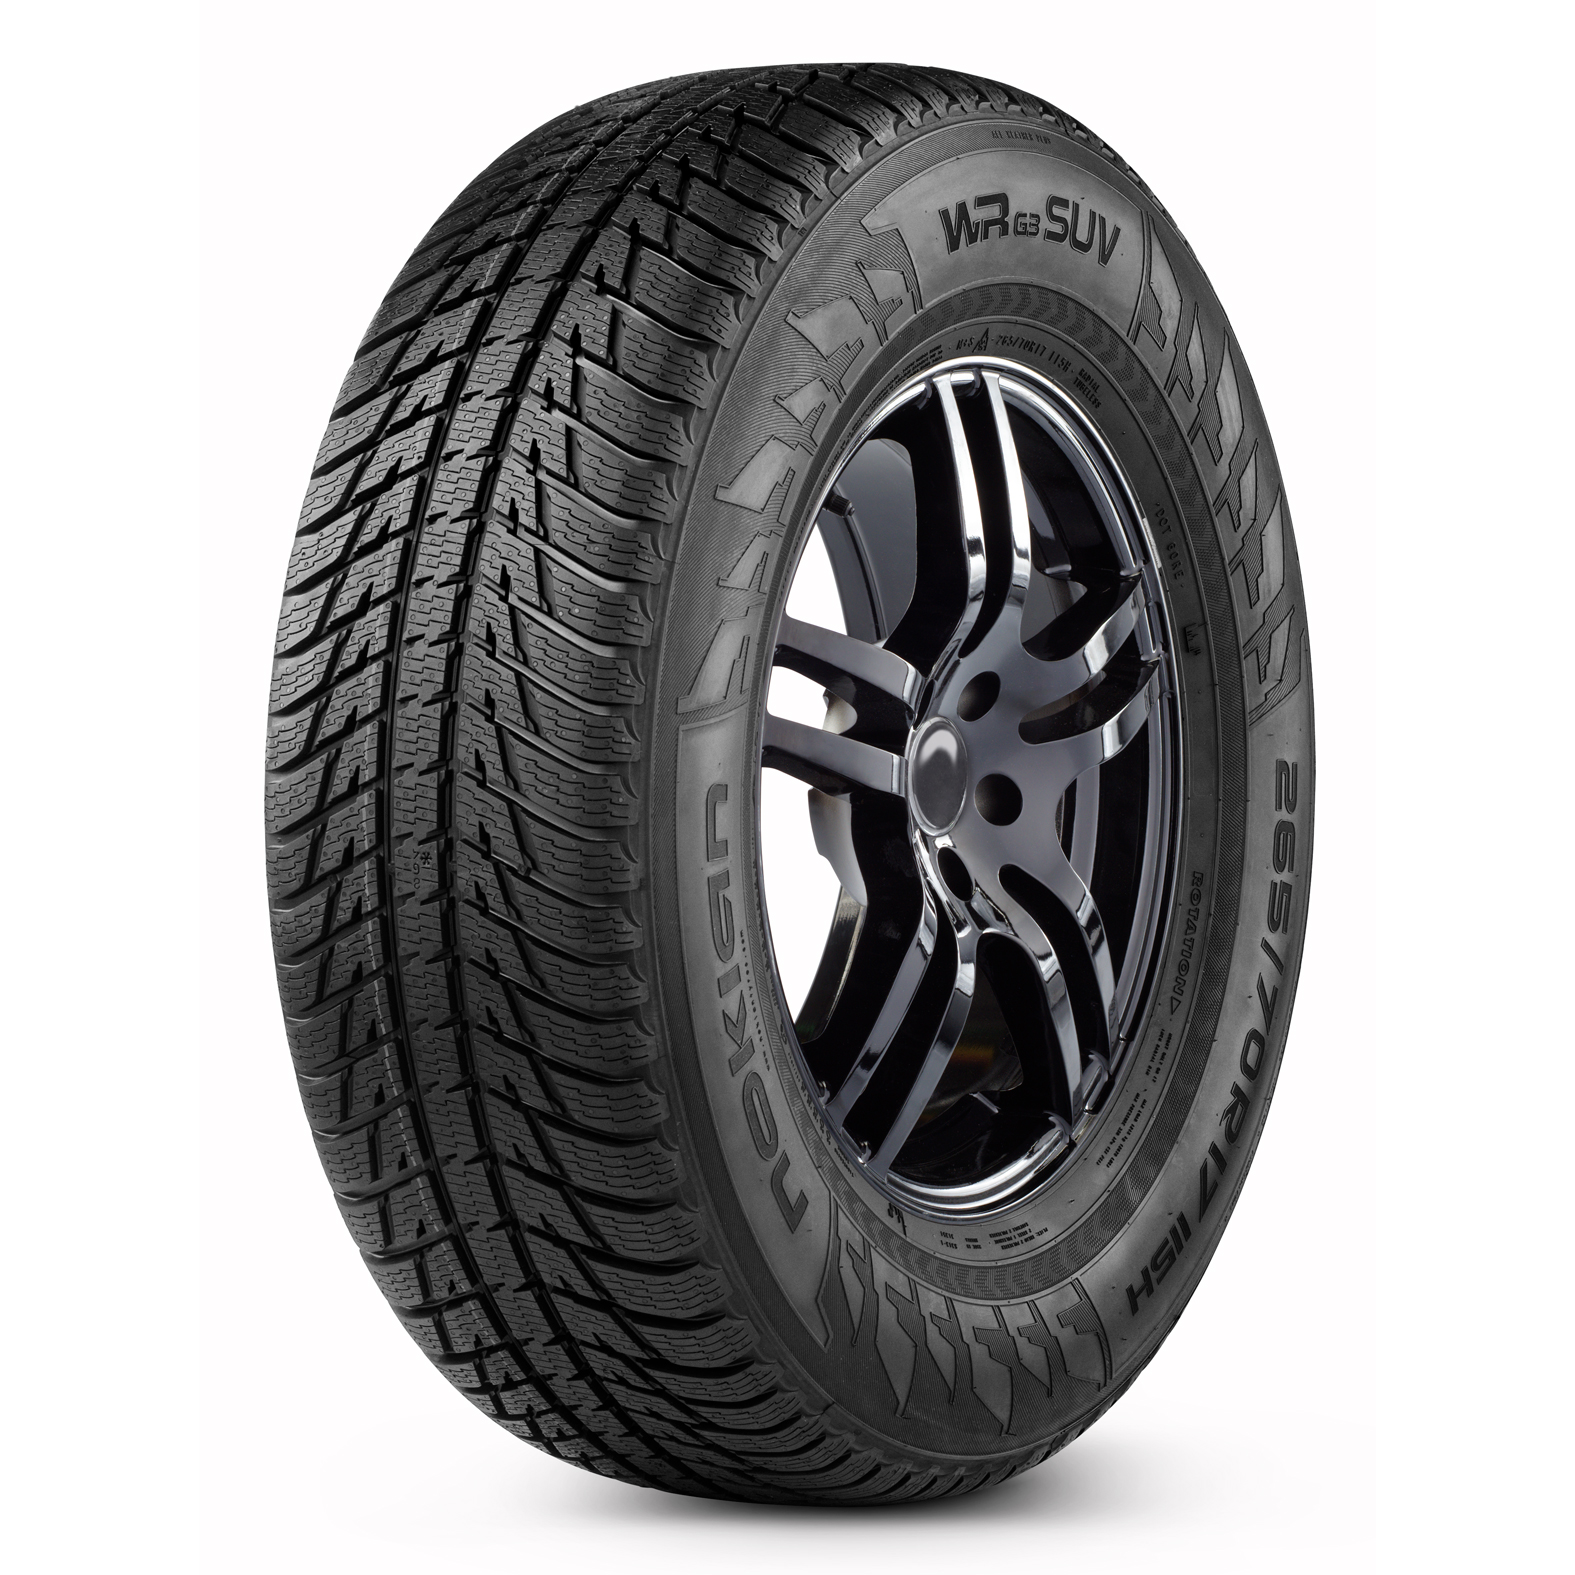 Nokian Tyres WRG3 SUV tire - angle